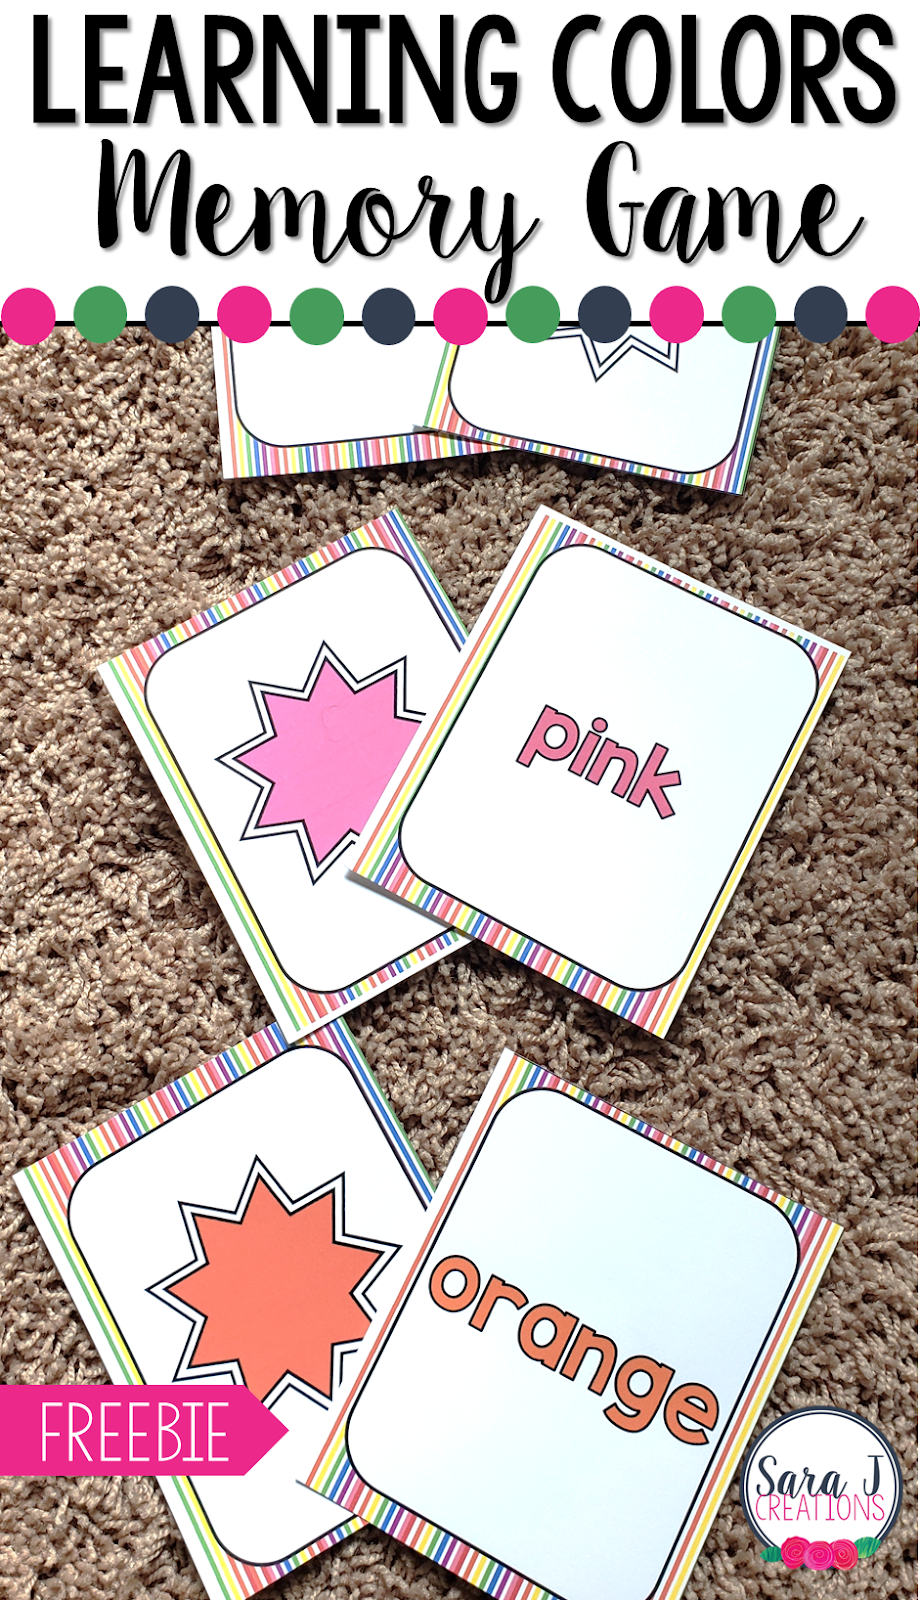 Learning Colors Memory Card Game